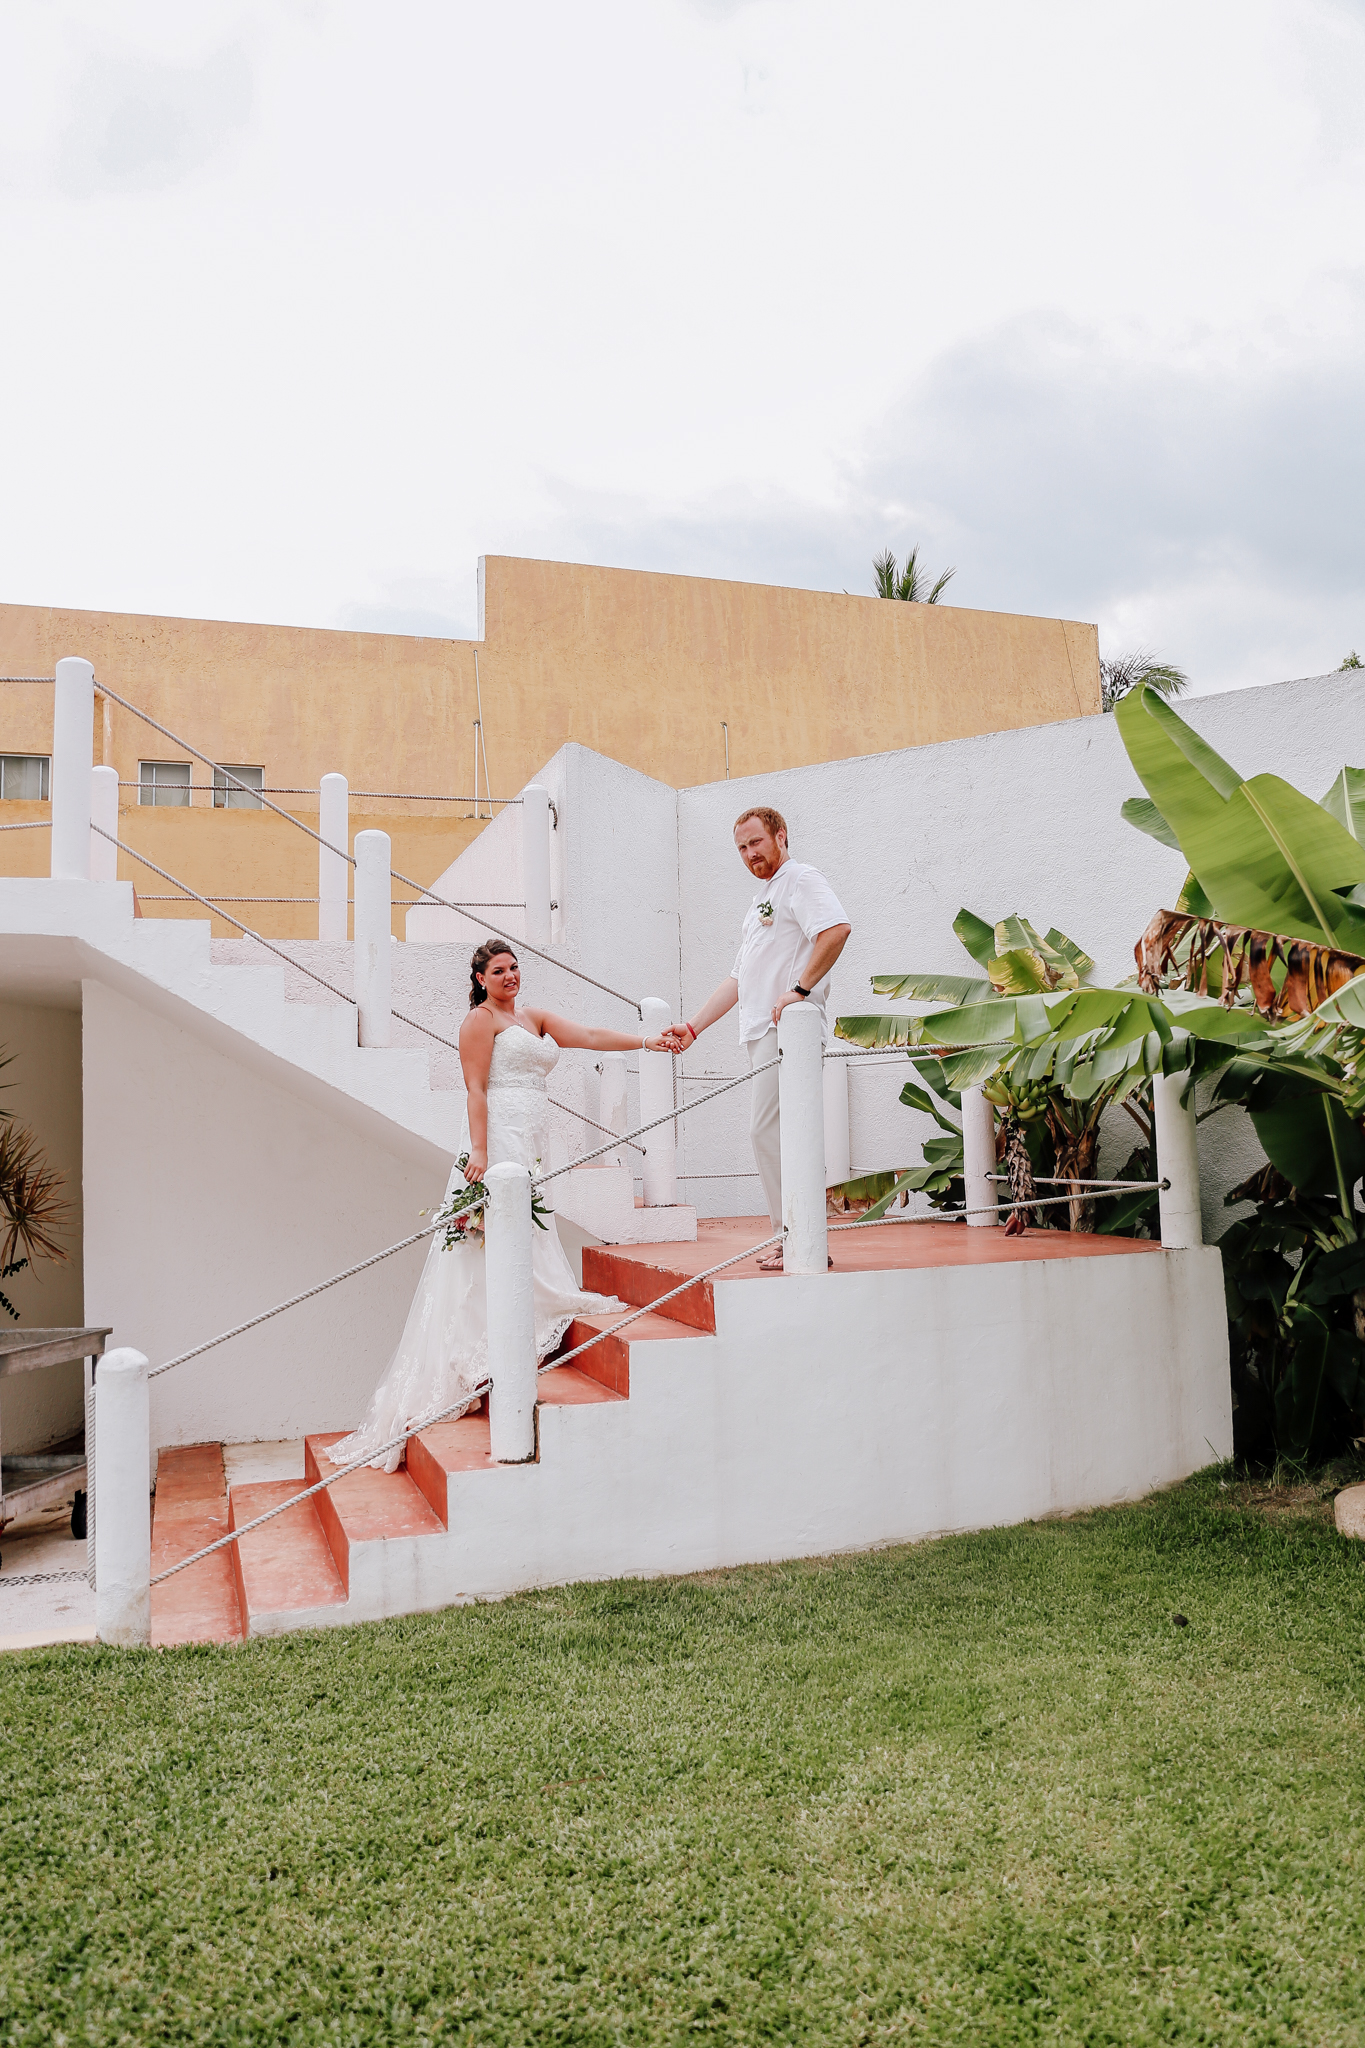 Tiffany and Ryan - Puerto Vallarta Wedding Photographer - 91.jpg